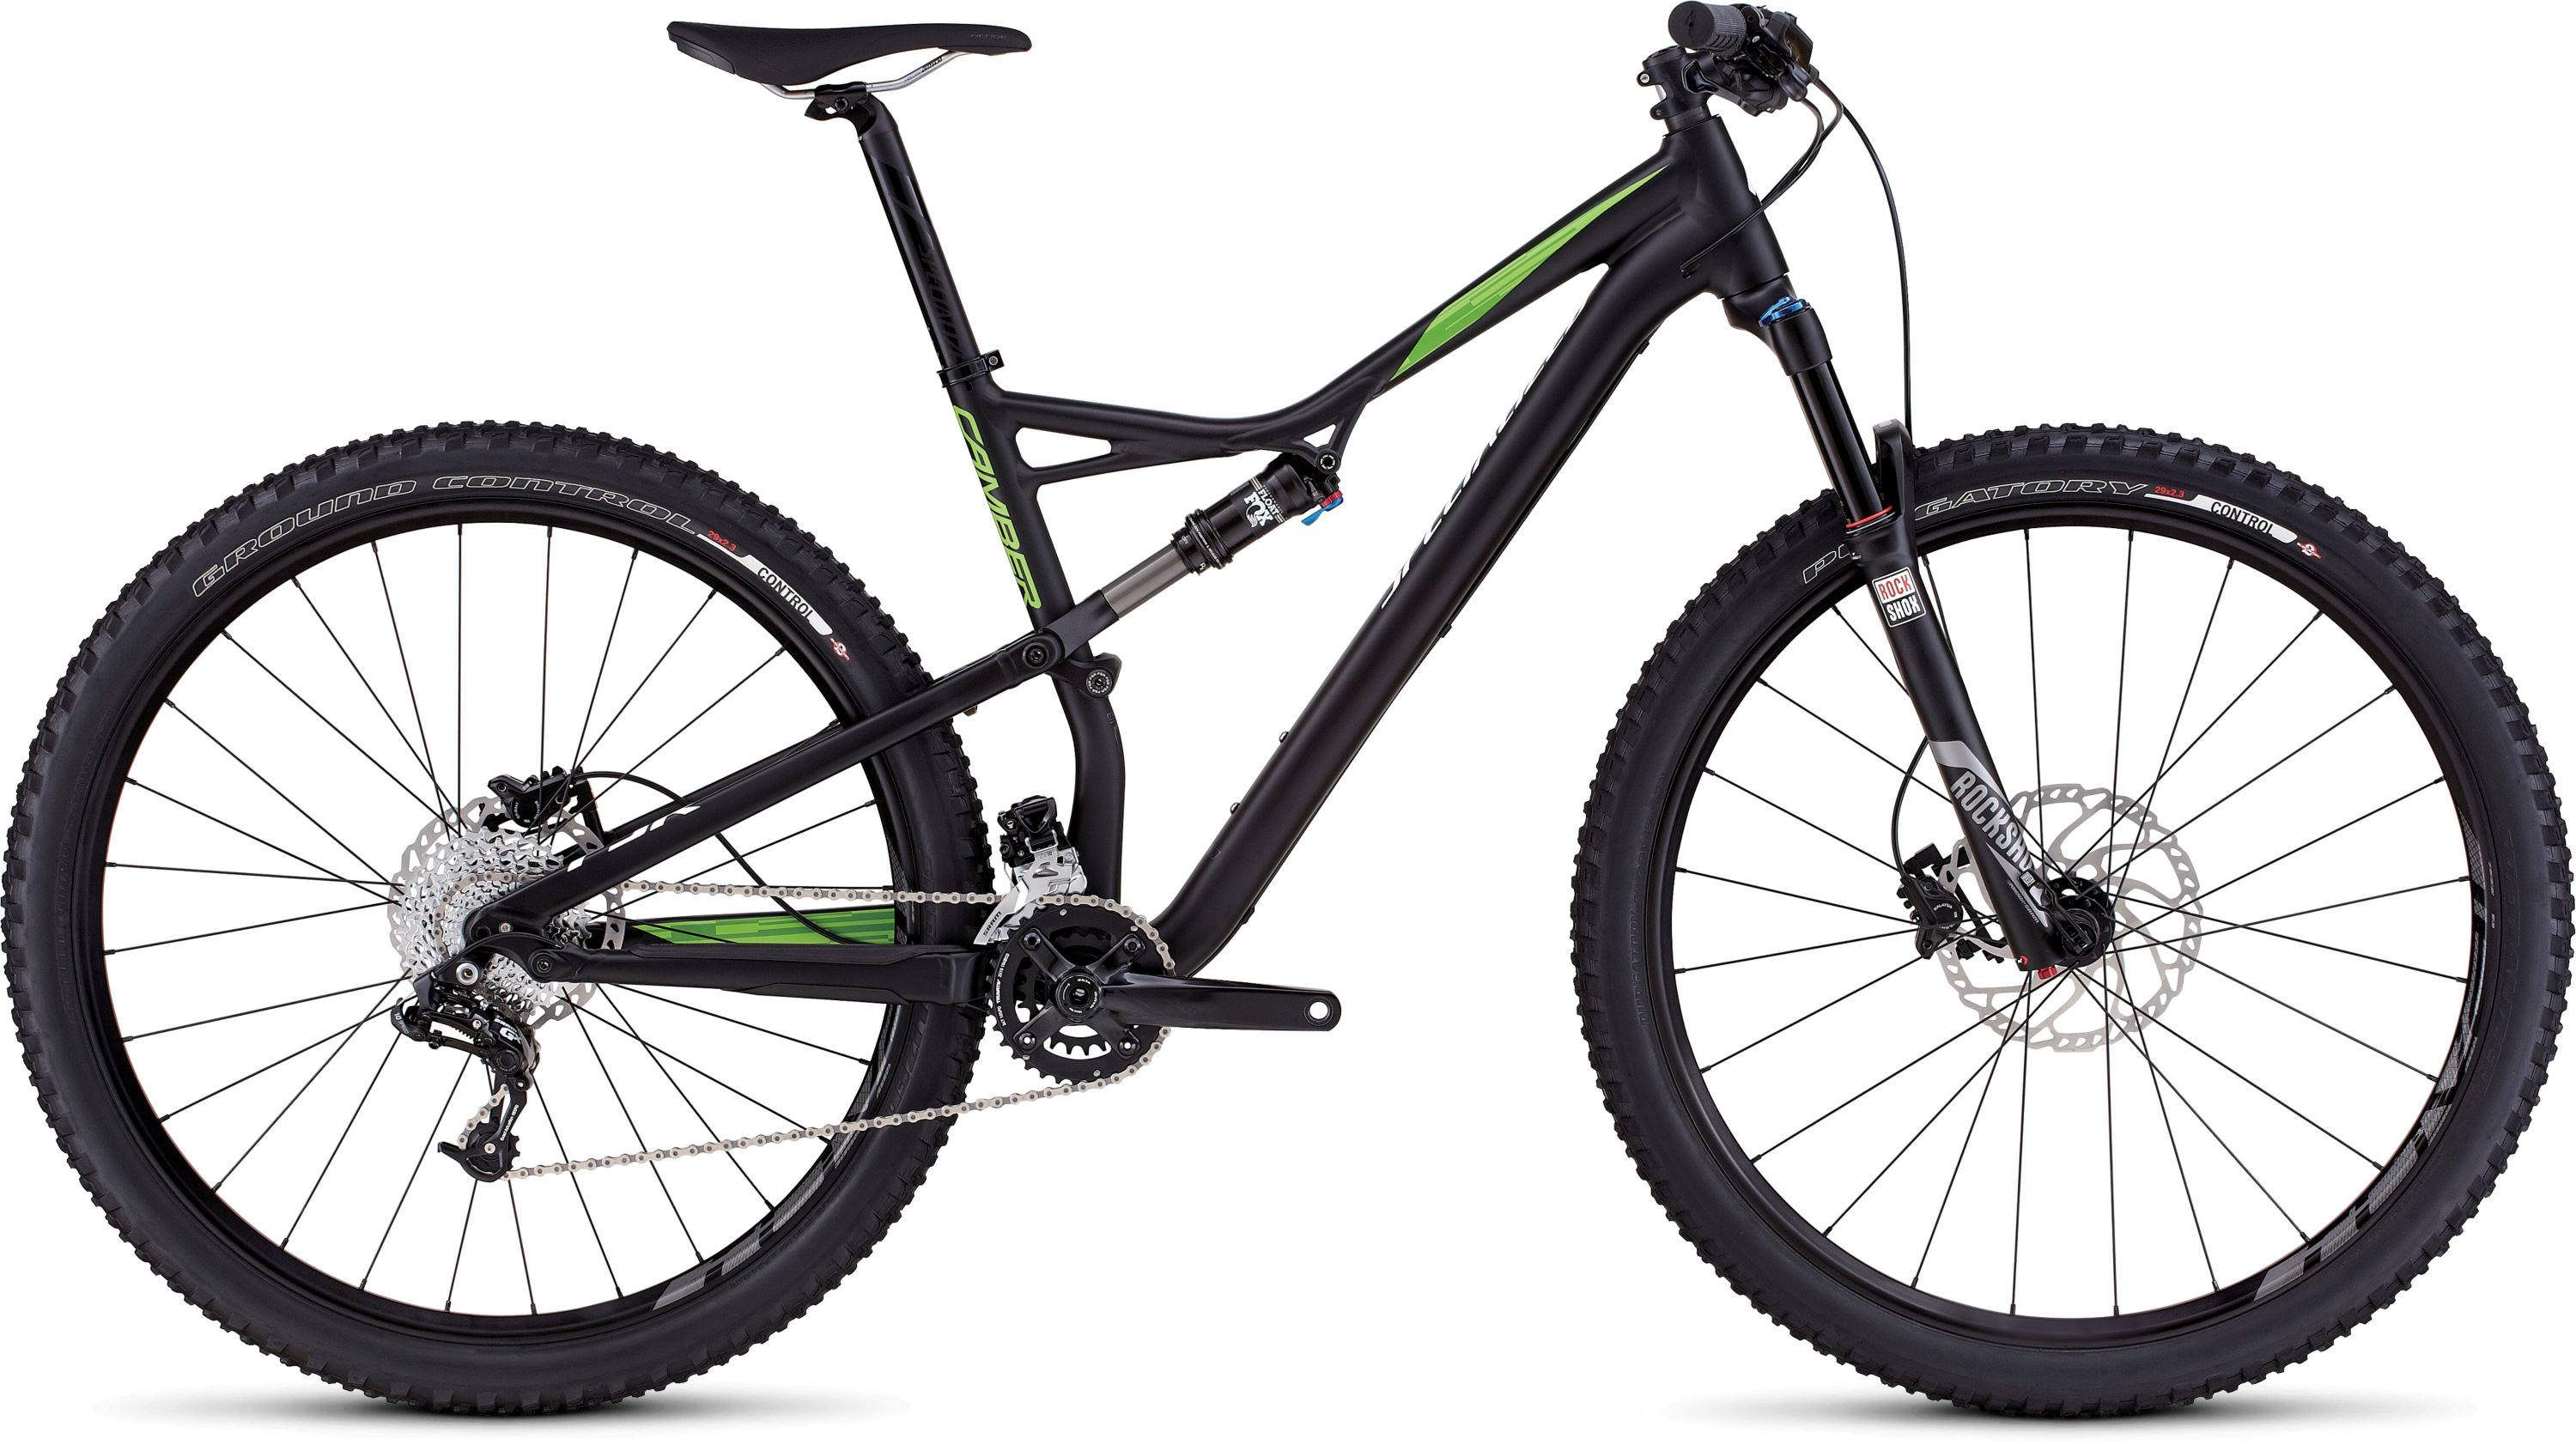 SPECIALIZED CAMBER FSR COMP 29 BLK/MONGRN/HYP S - Bikedreams & Dustbikes